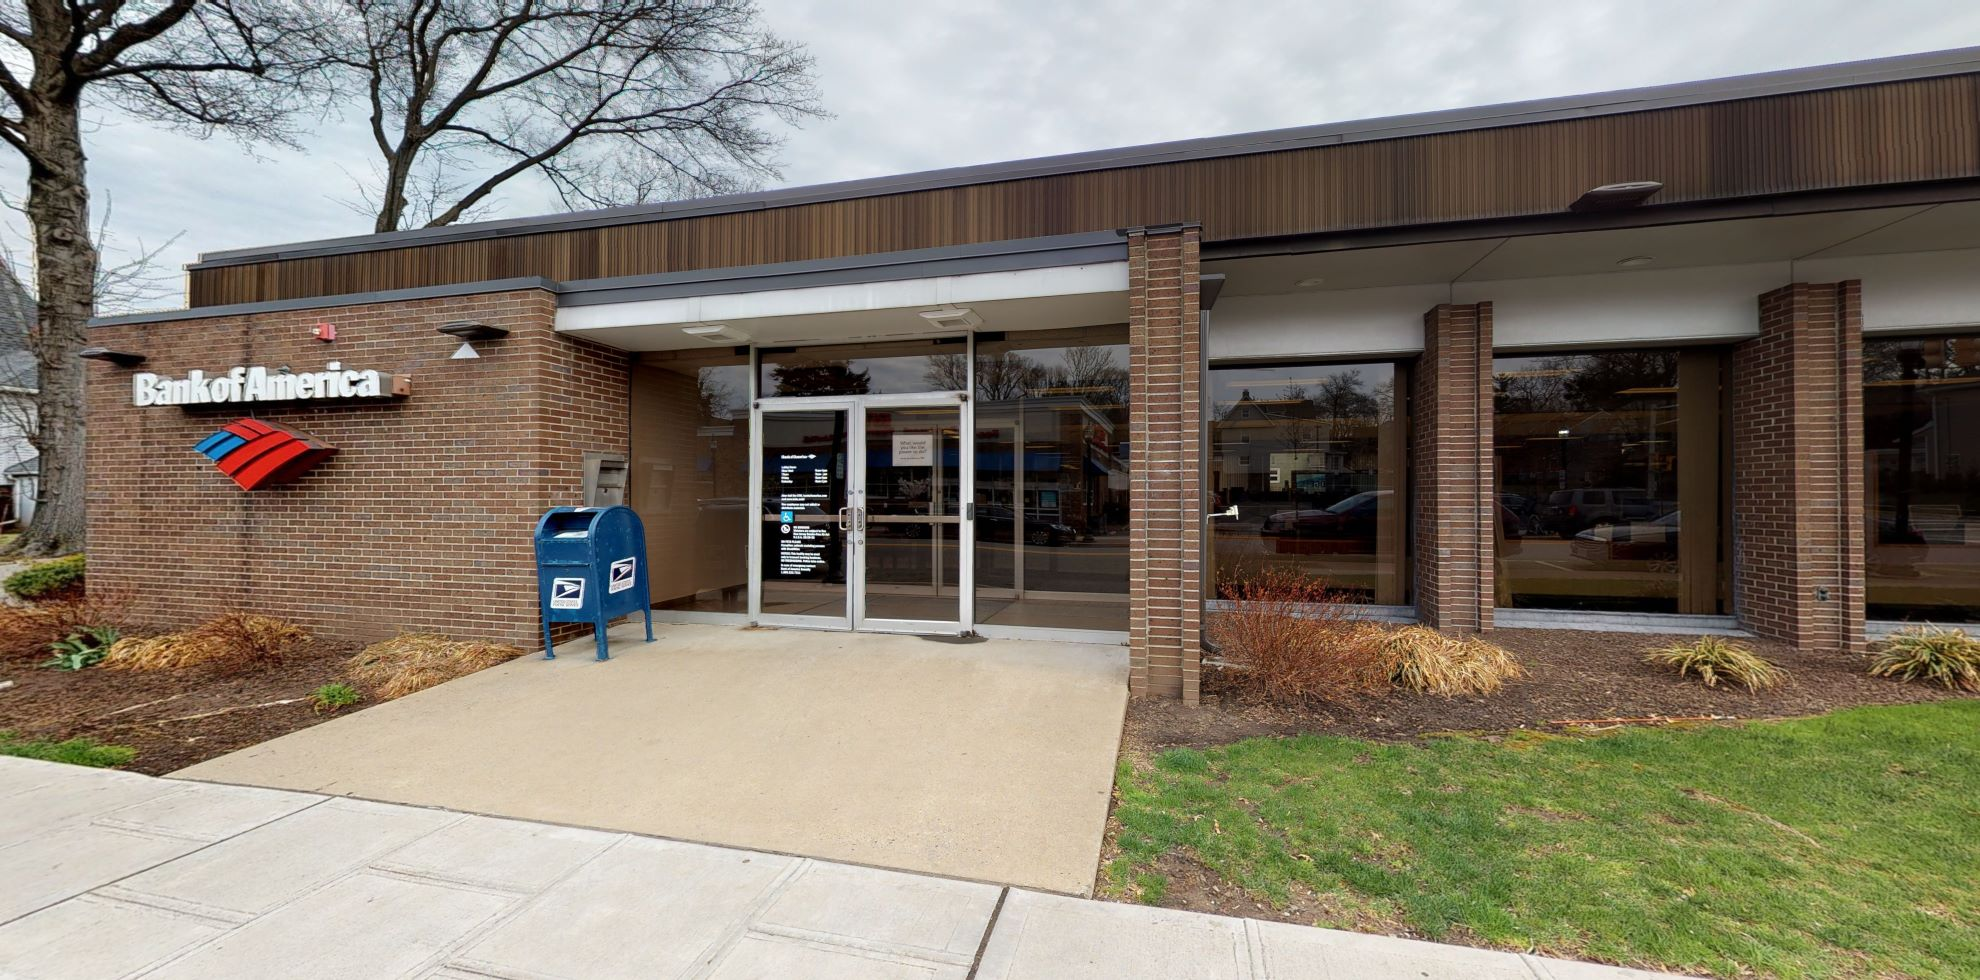 Bank of America financial center with drive-thru ATM   152 Boulevard, Hasbrouck Heights, NJ 07604